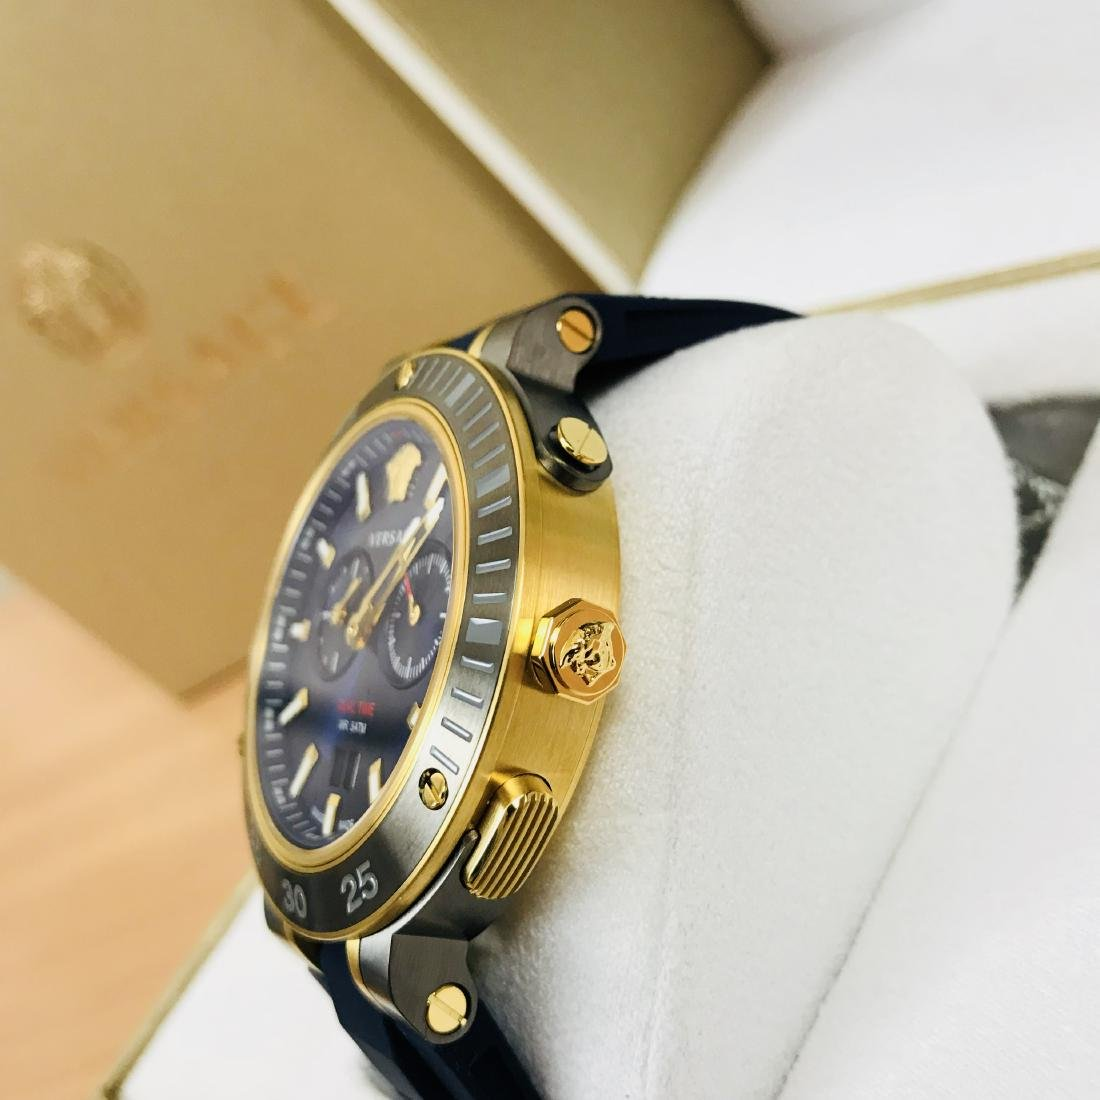 VERSACE V-EXTREME Swiss Made Dual Time Luxury Men's - 7